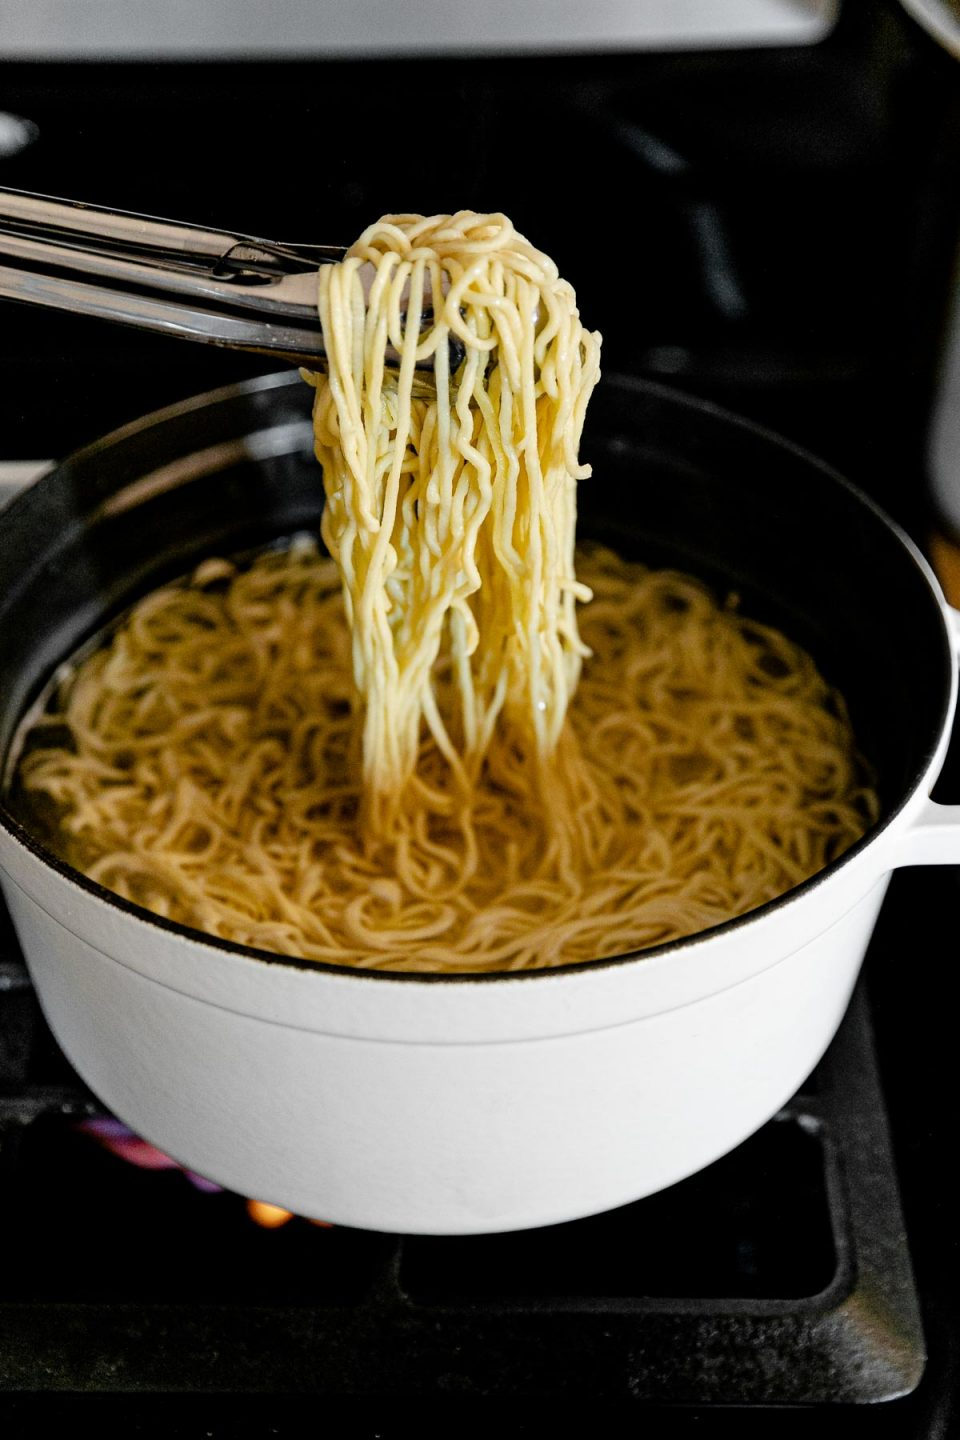 Tongs are used to pick up a bundle of fresh homemade pasta and hold it up over a white pot filled with boiling water and more fresh pasta as it cooks. The pot rests atop a gas stovetop range.